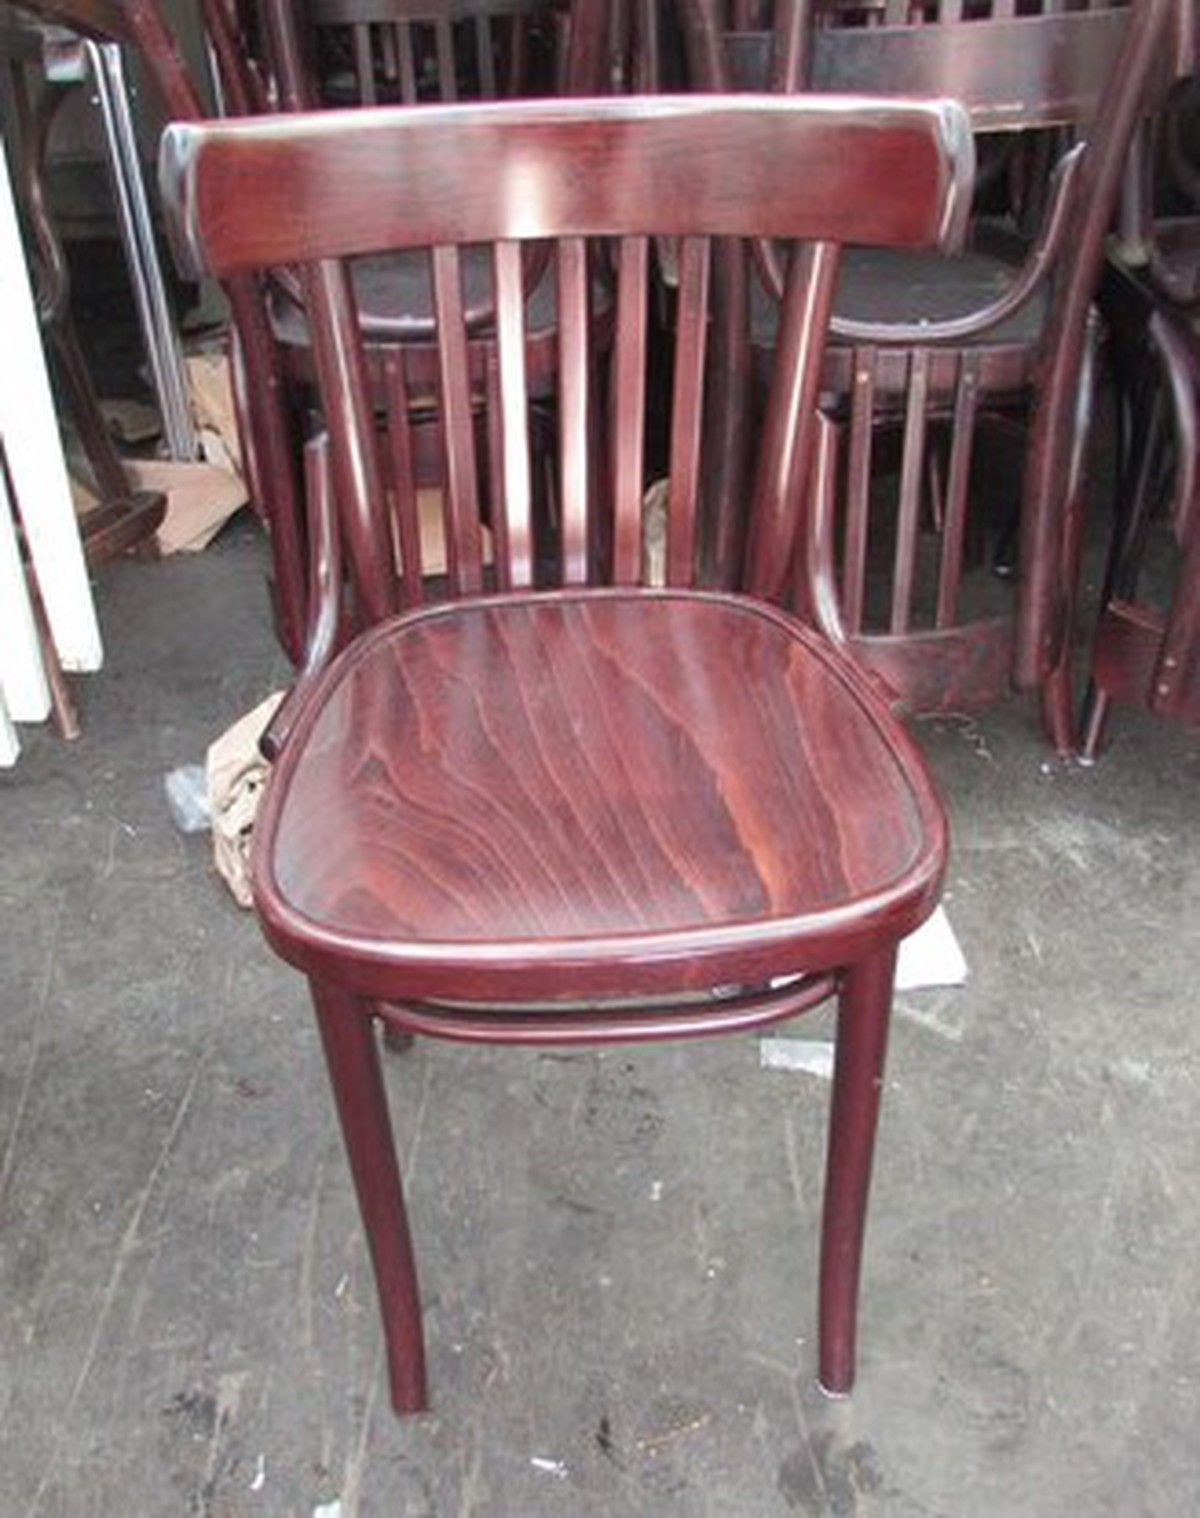 Cafe Chairs For Sale Secondhand Chairs And Tables Restaurant Chairs 50x Pub